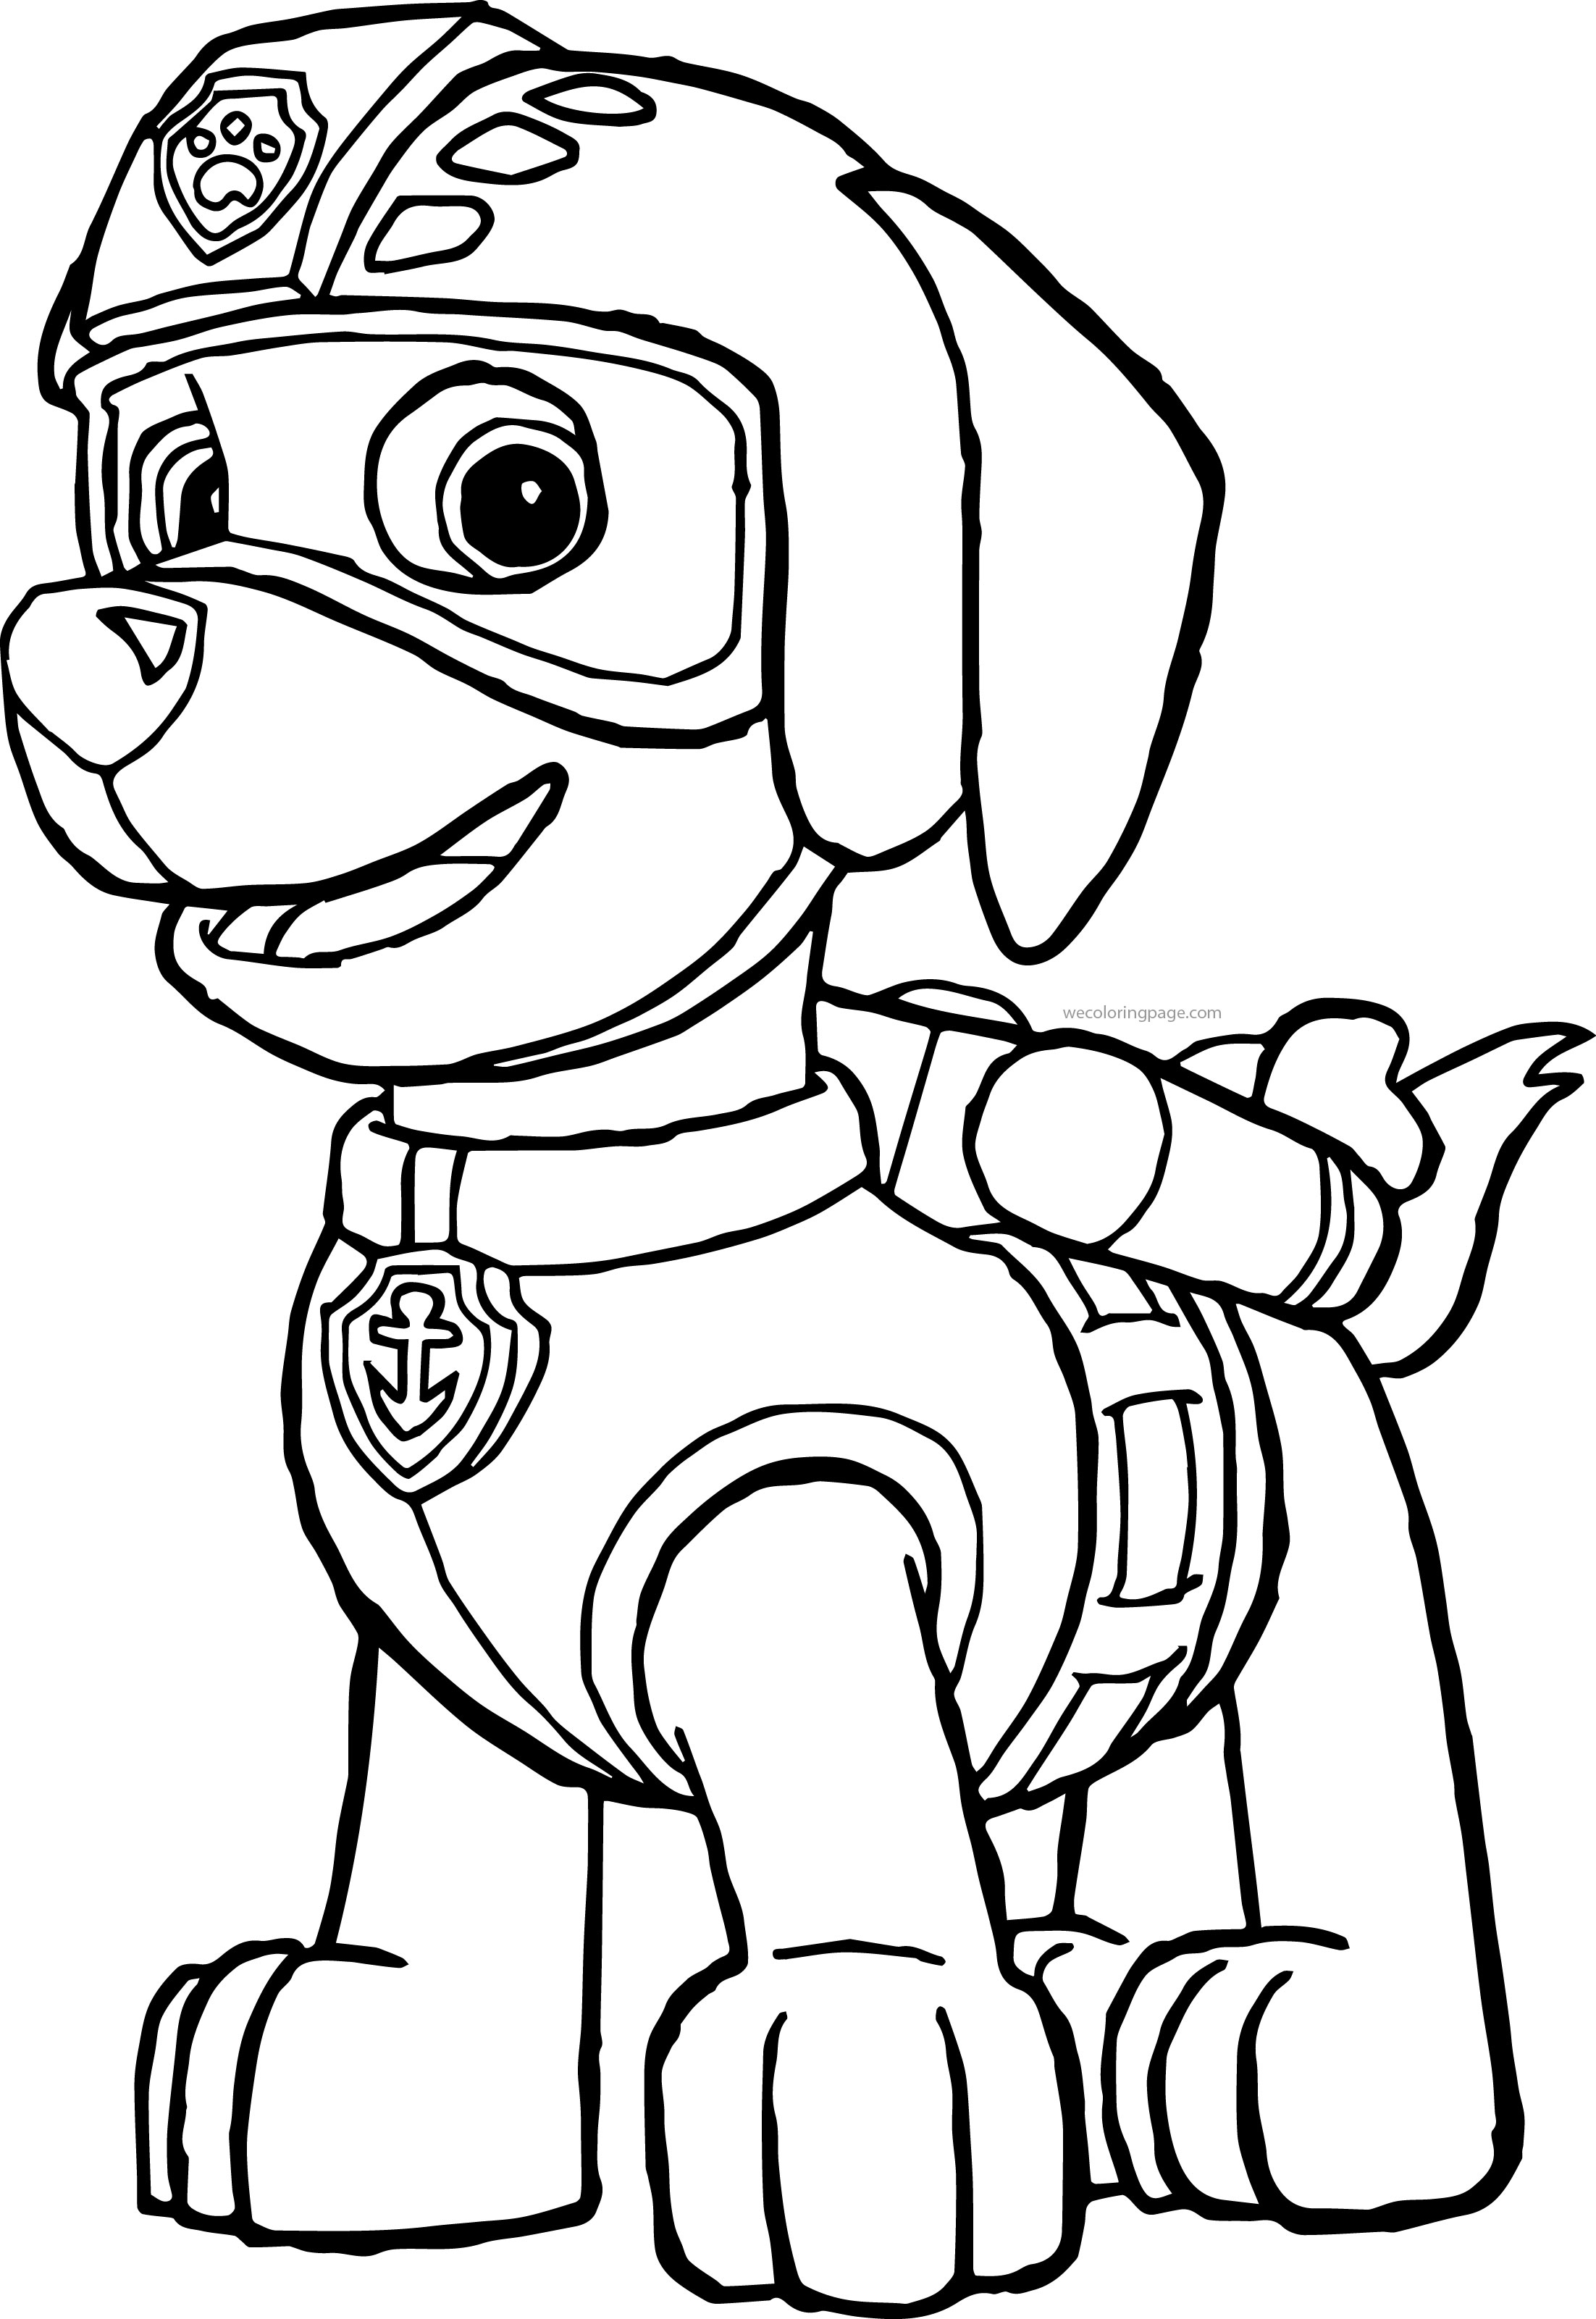 chase paw patrol coloring pages at getdrawings  free